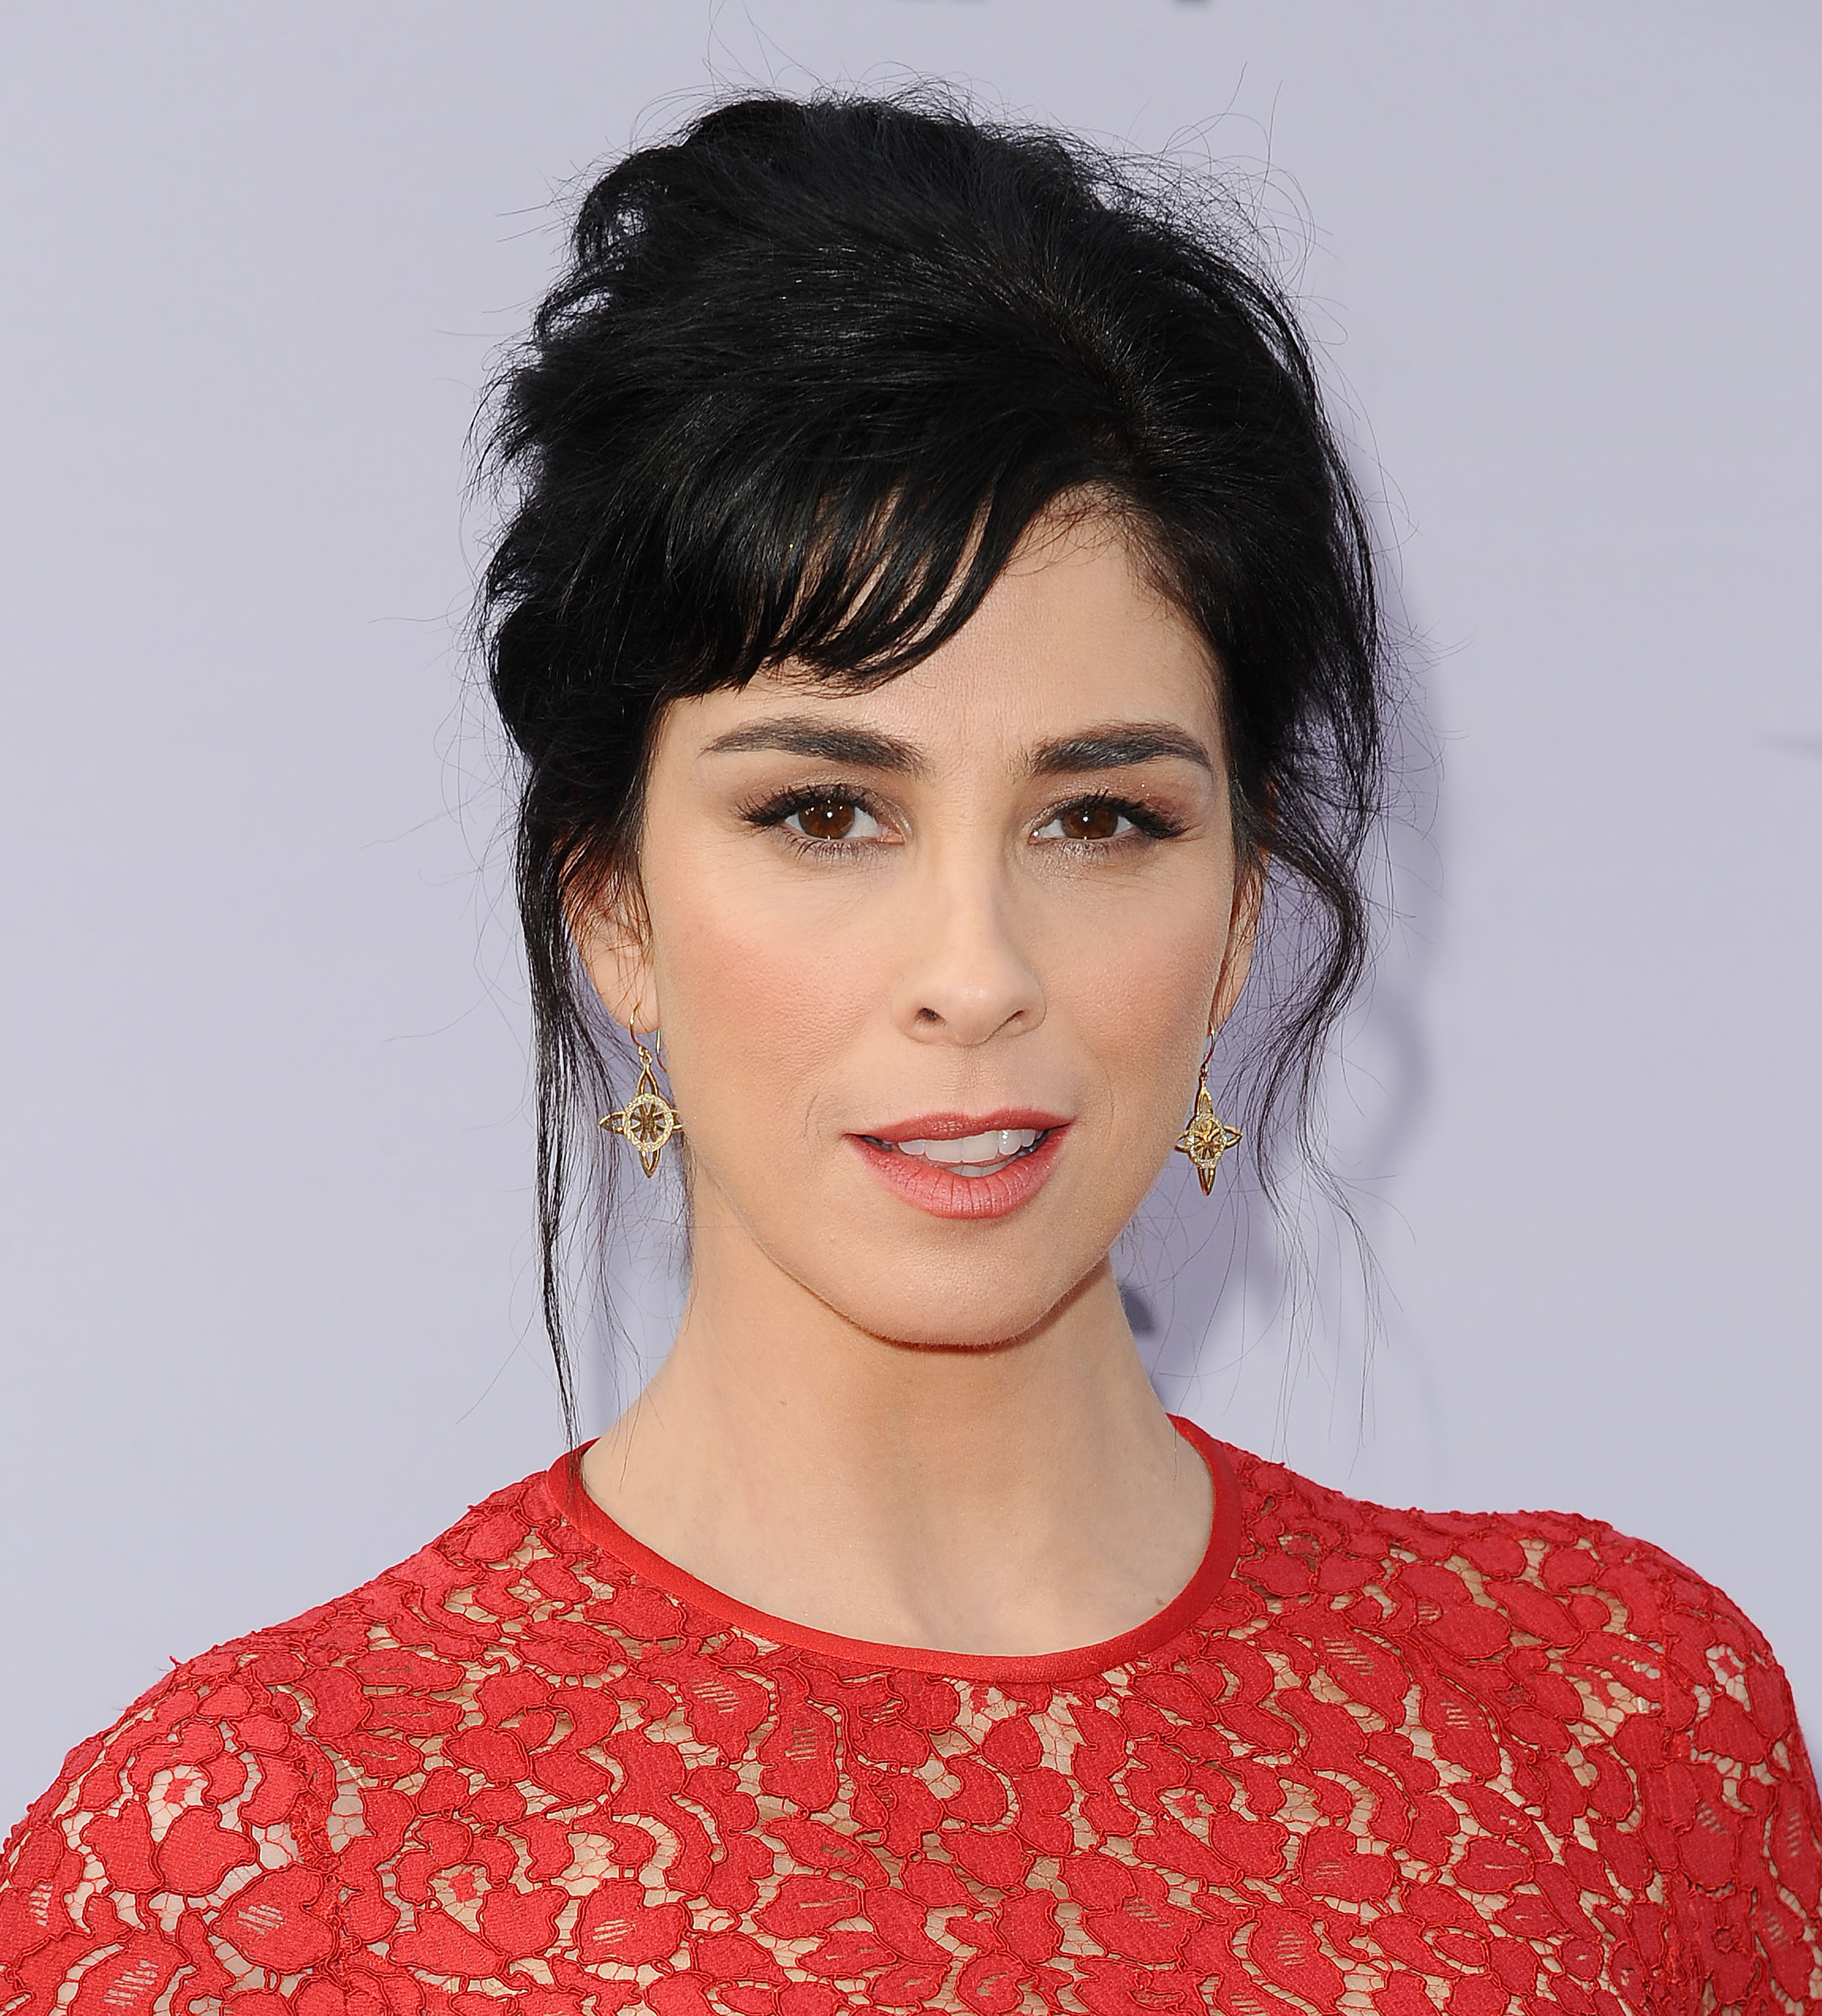 Sarah Silverman attends the AFI Life Achievement Award gala on June 4, 2015 in Hollywood, California.